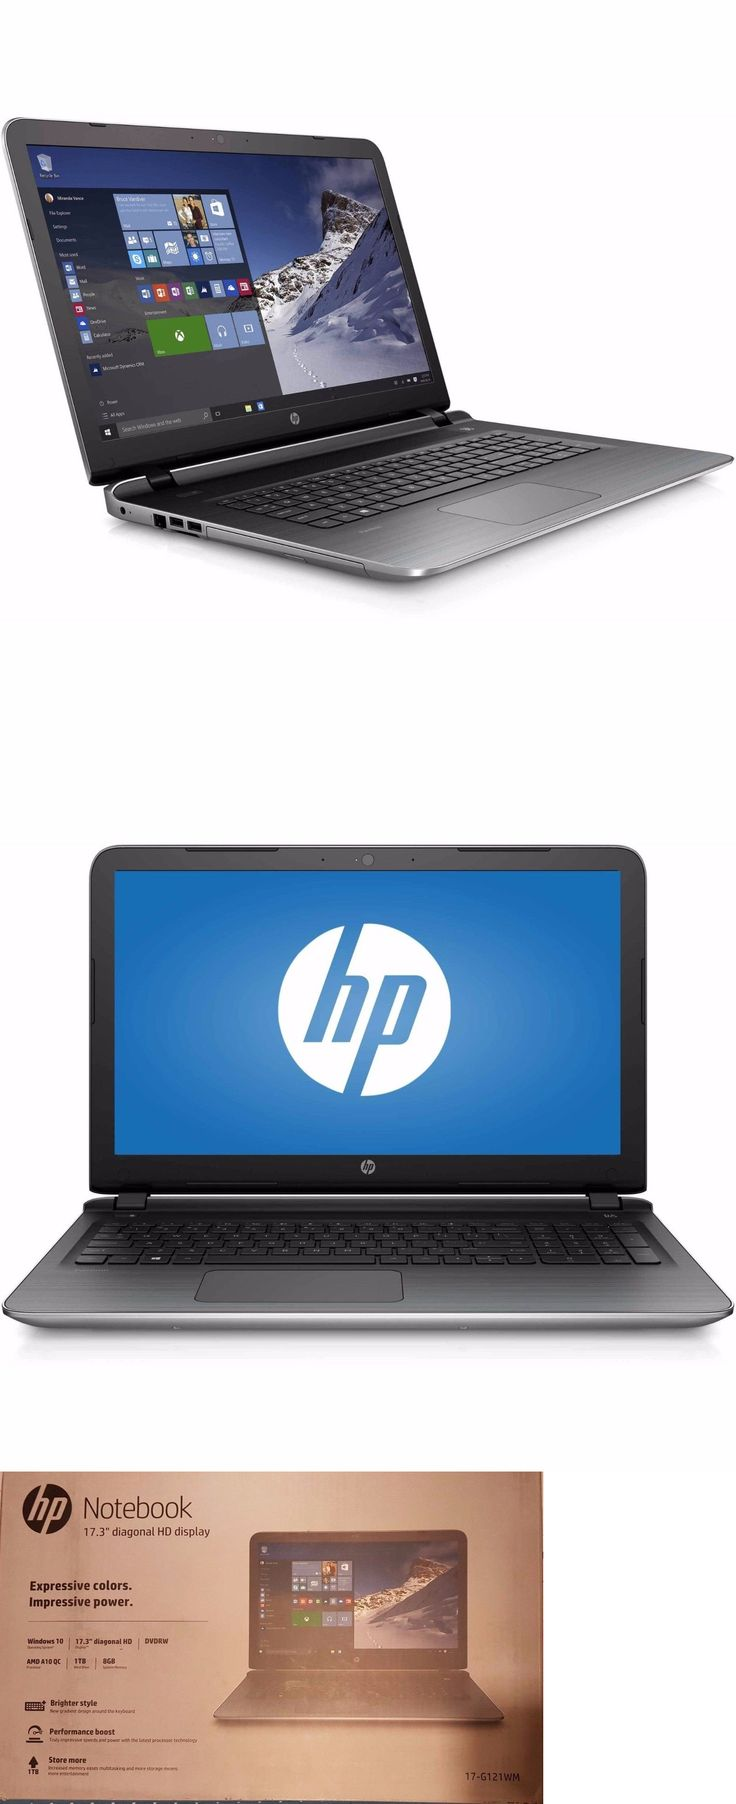 general for sale: New Sealed Hp 17.3 Pavilion 17-G121wm Laptop Notebook Amd A10-8700P 8Gb Ram 1Tb -> BUY IT NOW ONLY: $379 on eBay!